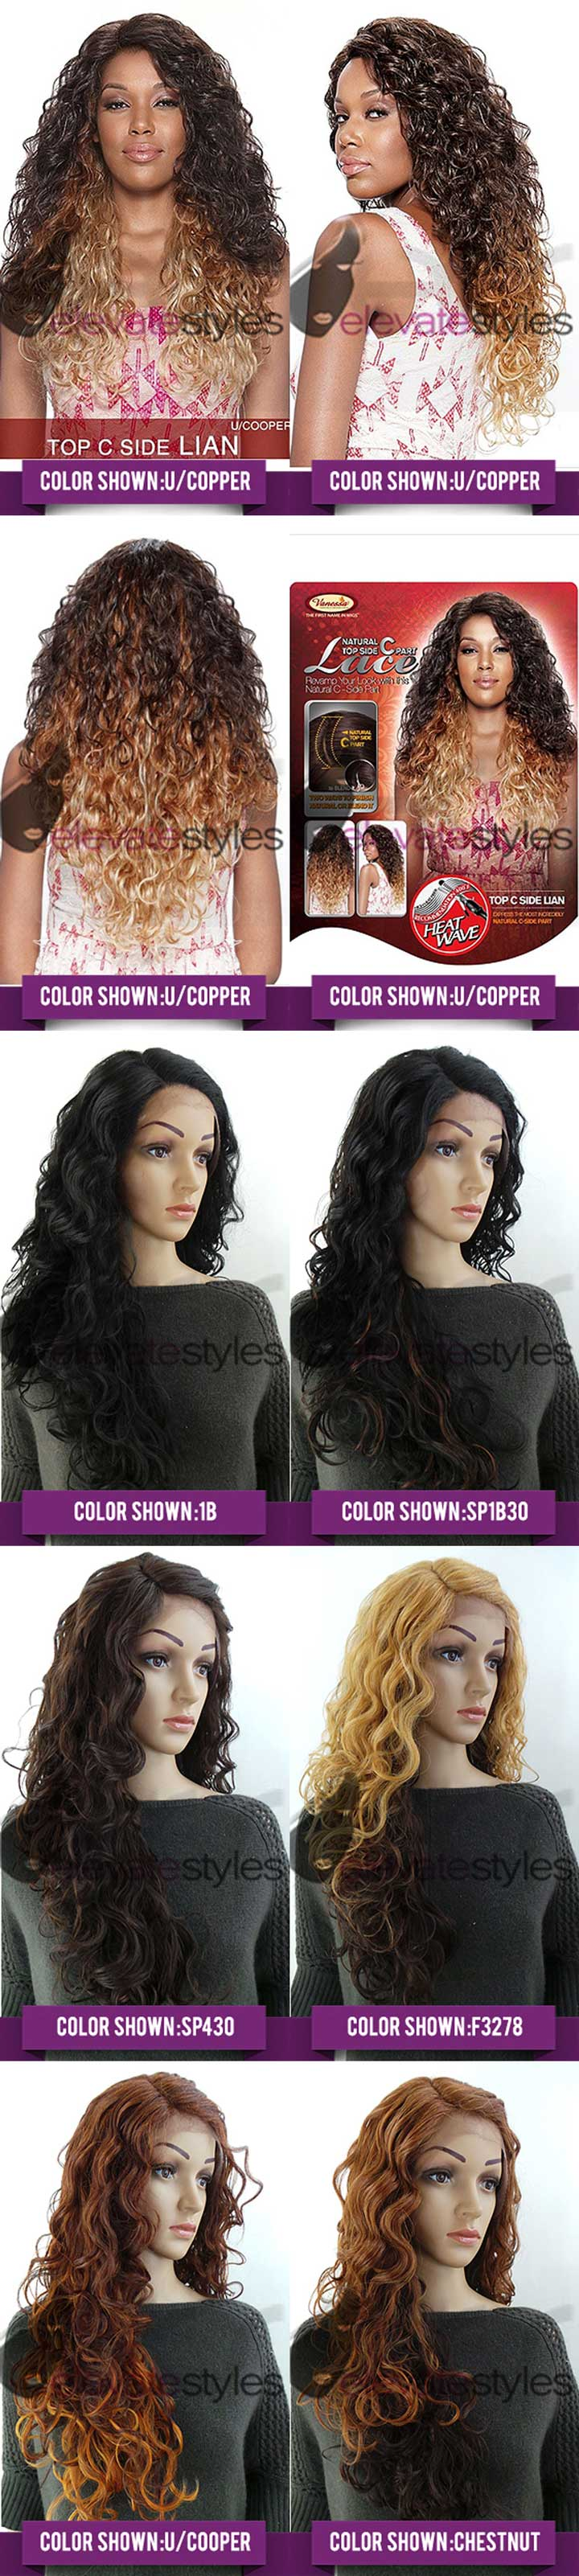 Vanessa synthetic lace part wig top c side lian sew in weave